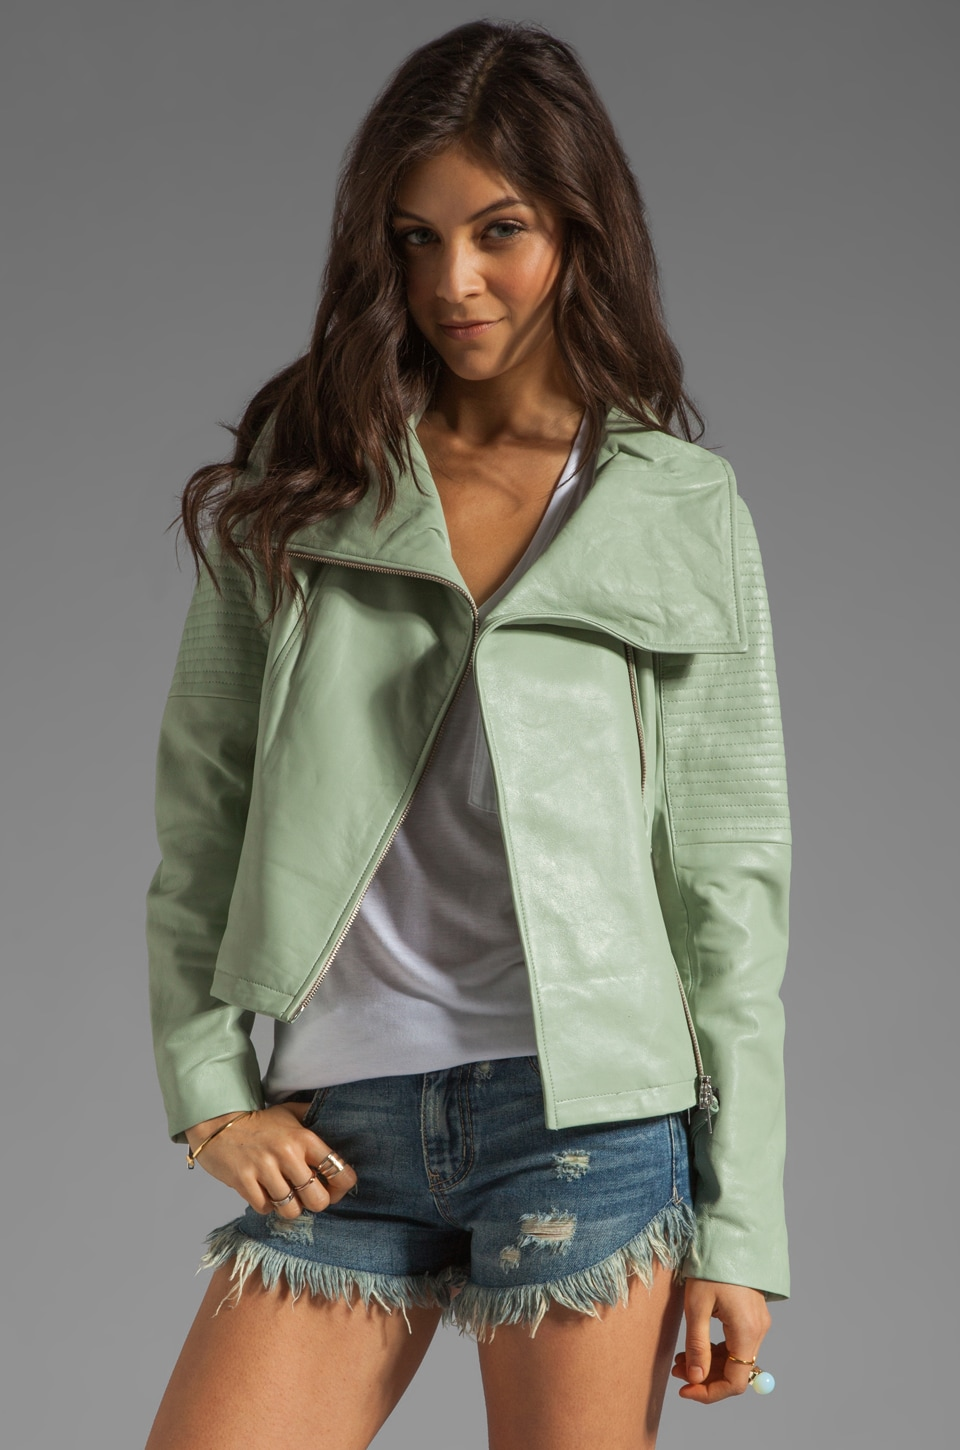 Mackage Gabby Classic Leather Jacket in Mint